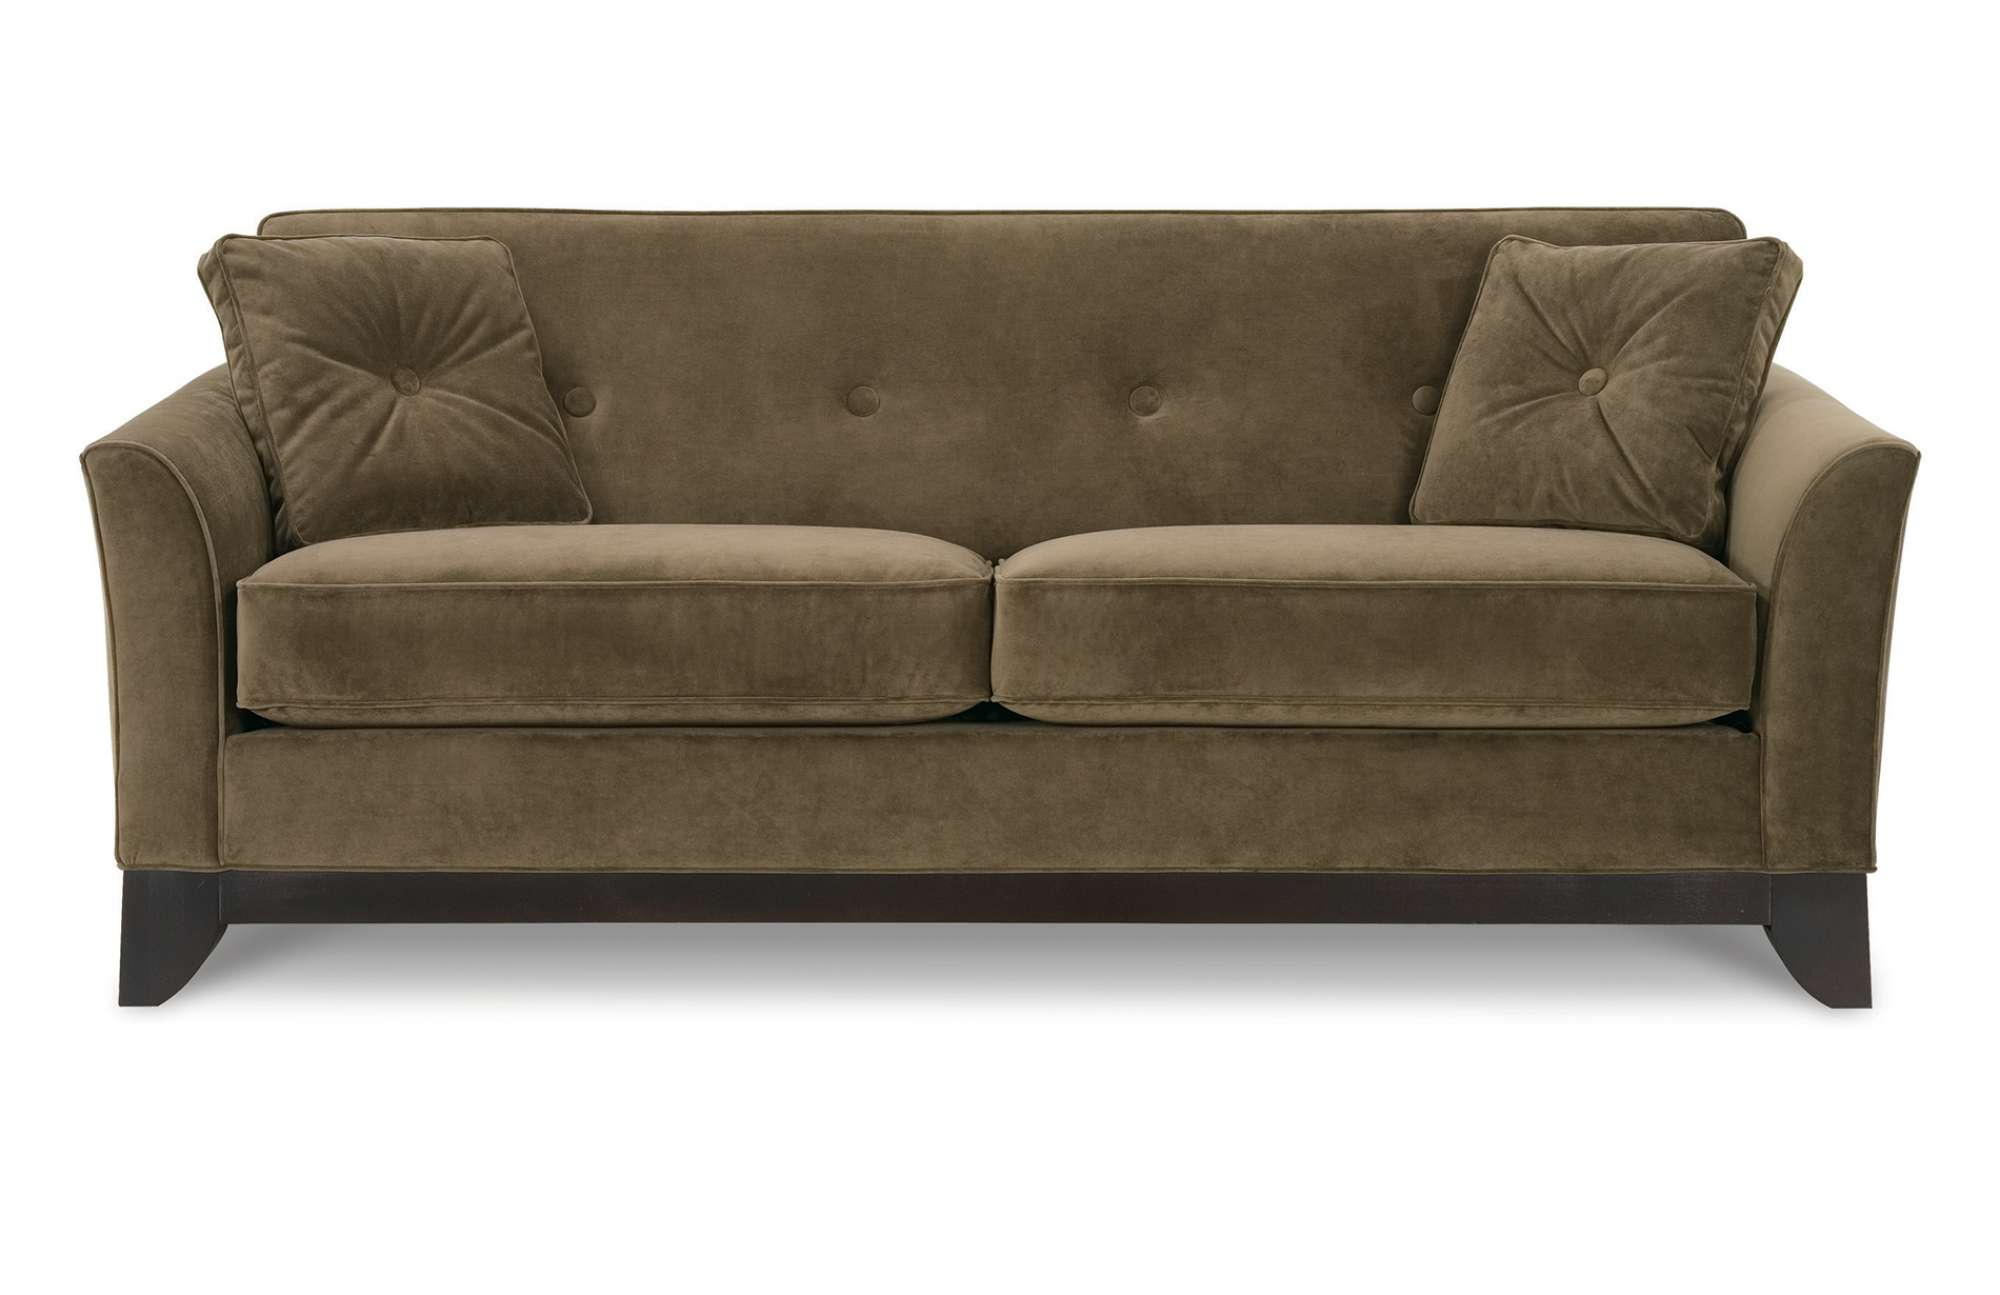 Living Spaces Couch Potato Slo Furniture In San Luis